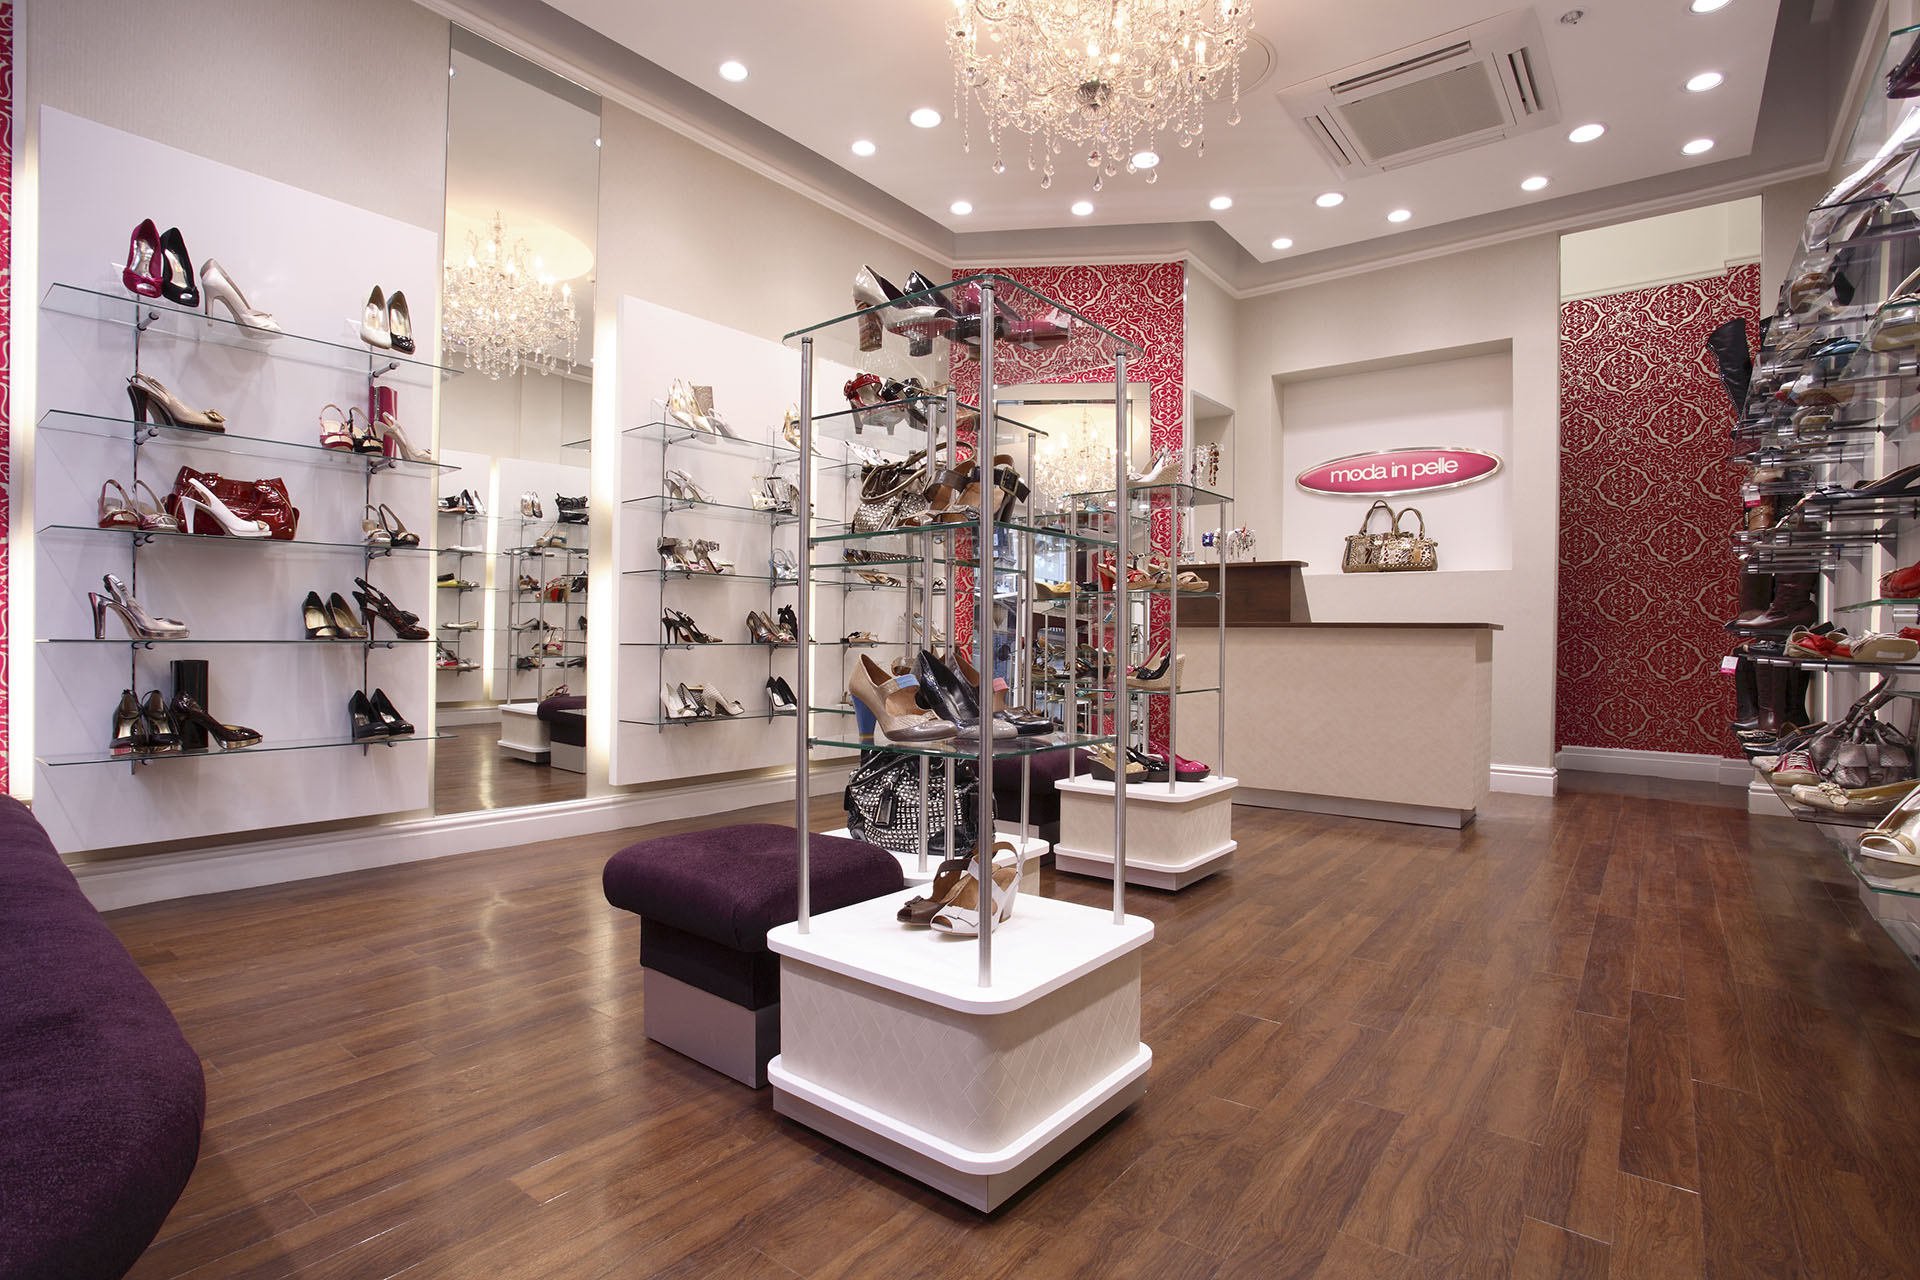 Moda In Pelle - showroom displaying a variety of shoes and bags.